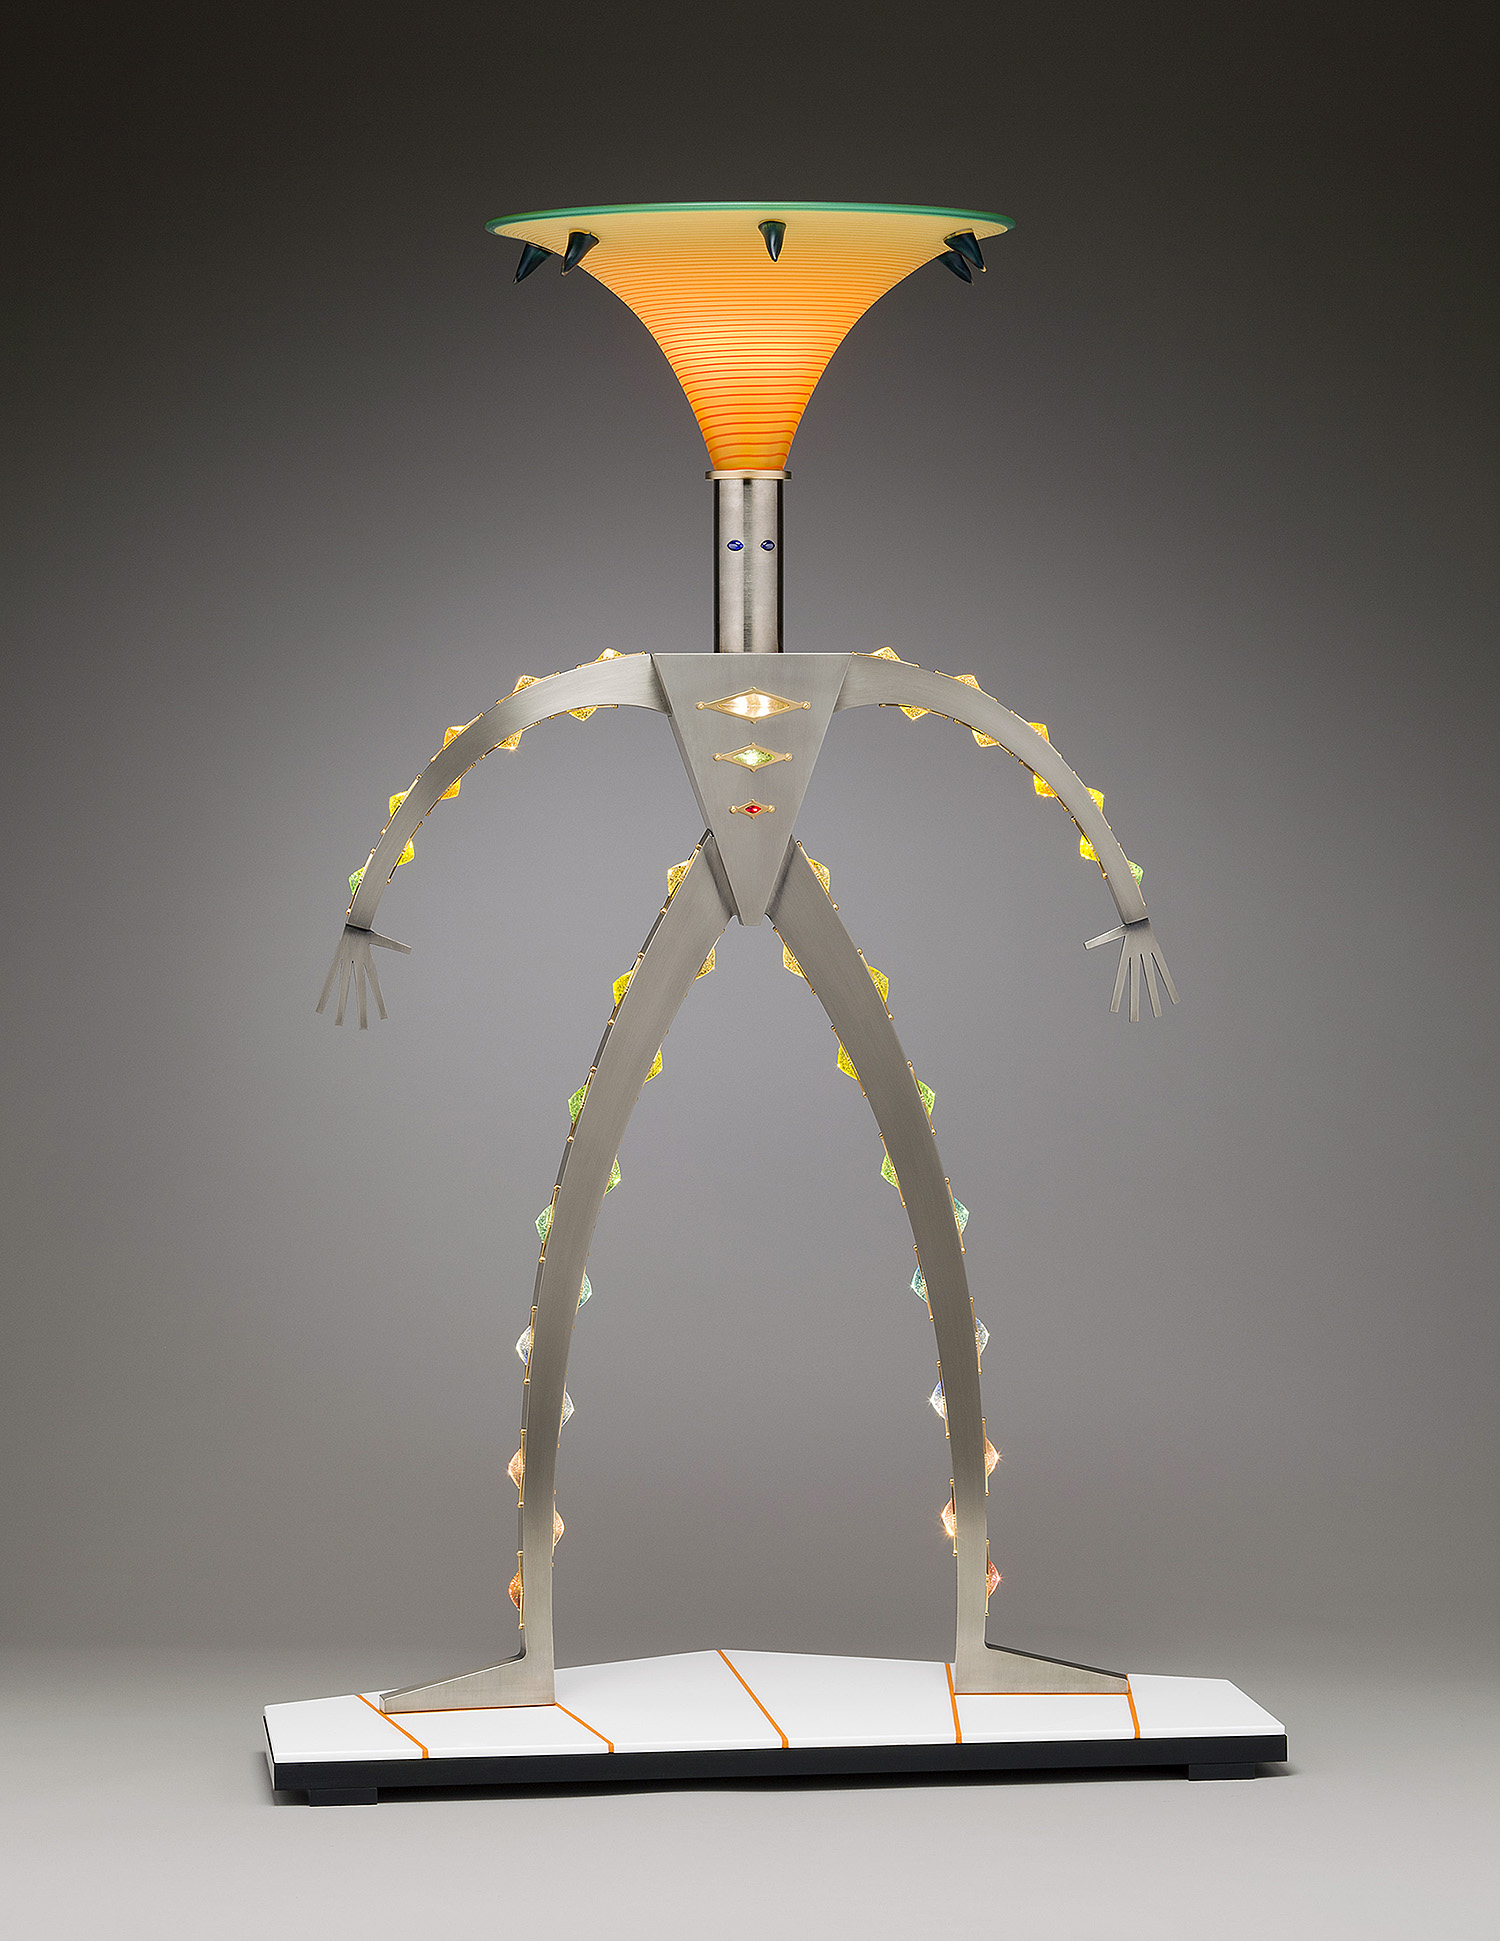 """Suit of Light   2011. Blown glass, nickel-plated and anodized aluminum, gold plated brass, 50 LED lights, pate de verre and Vitrolite glass. 48 x 36 x 17"""""""